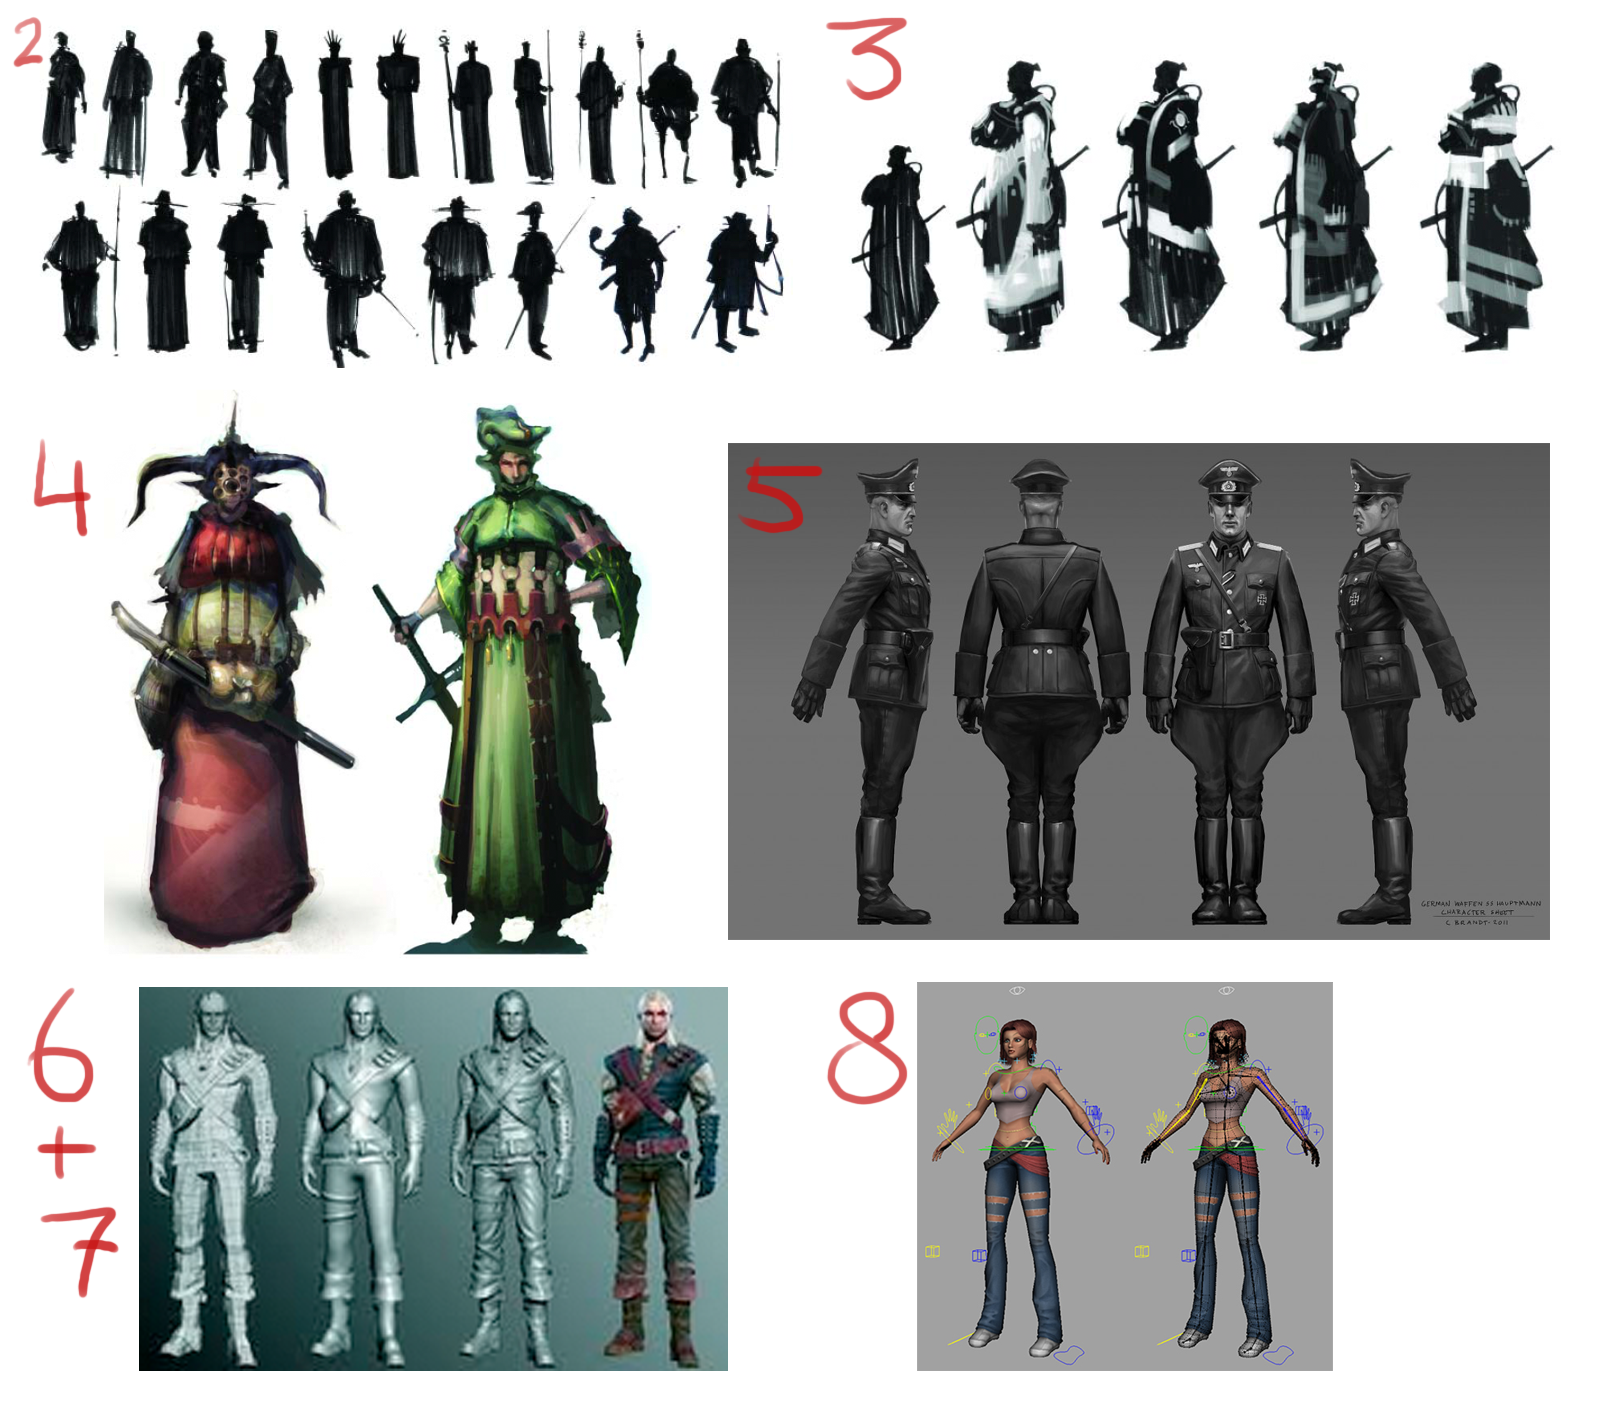 Cartoon Character Design Process : The raven maiden transmedial character design games vs